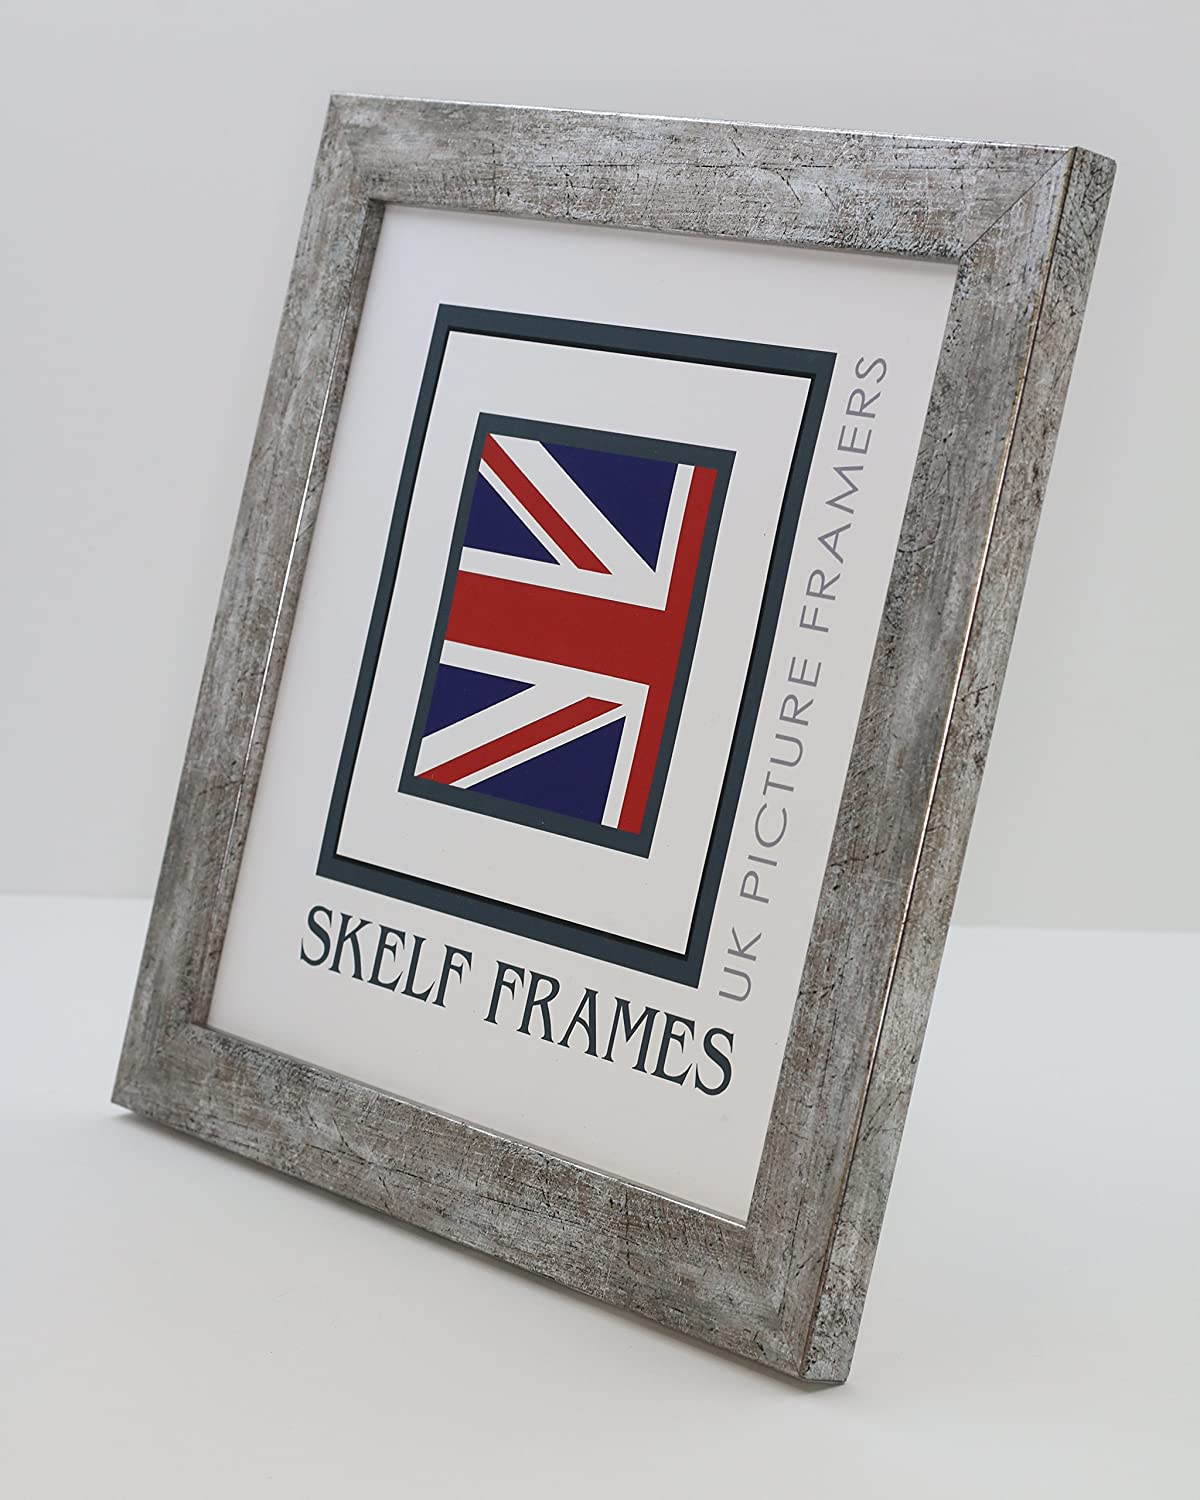 4 x 4 Skelf Frames Flat Antique Silver Wood Square Picture//Photo Frame With Glass